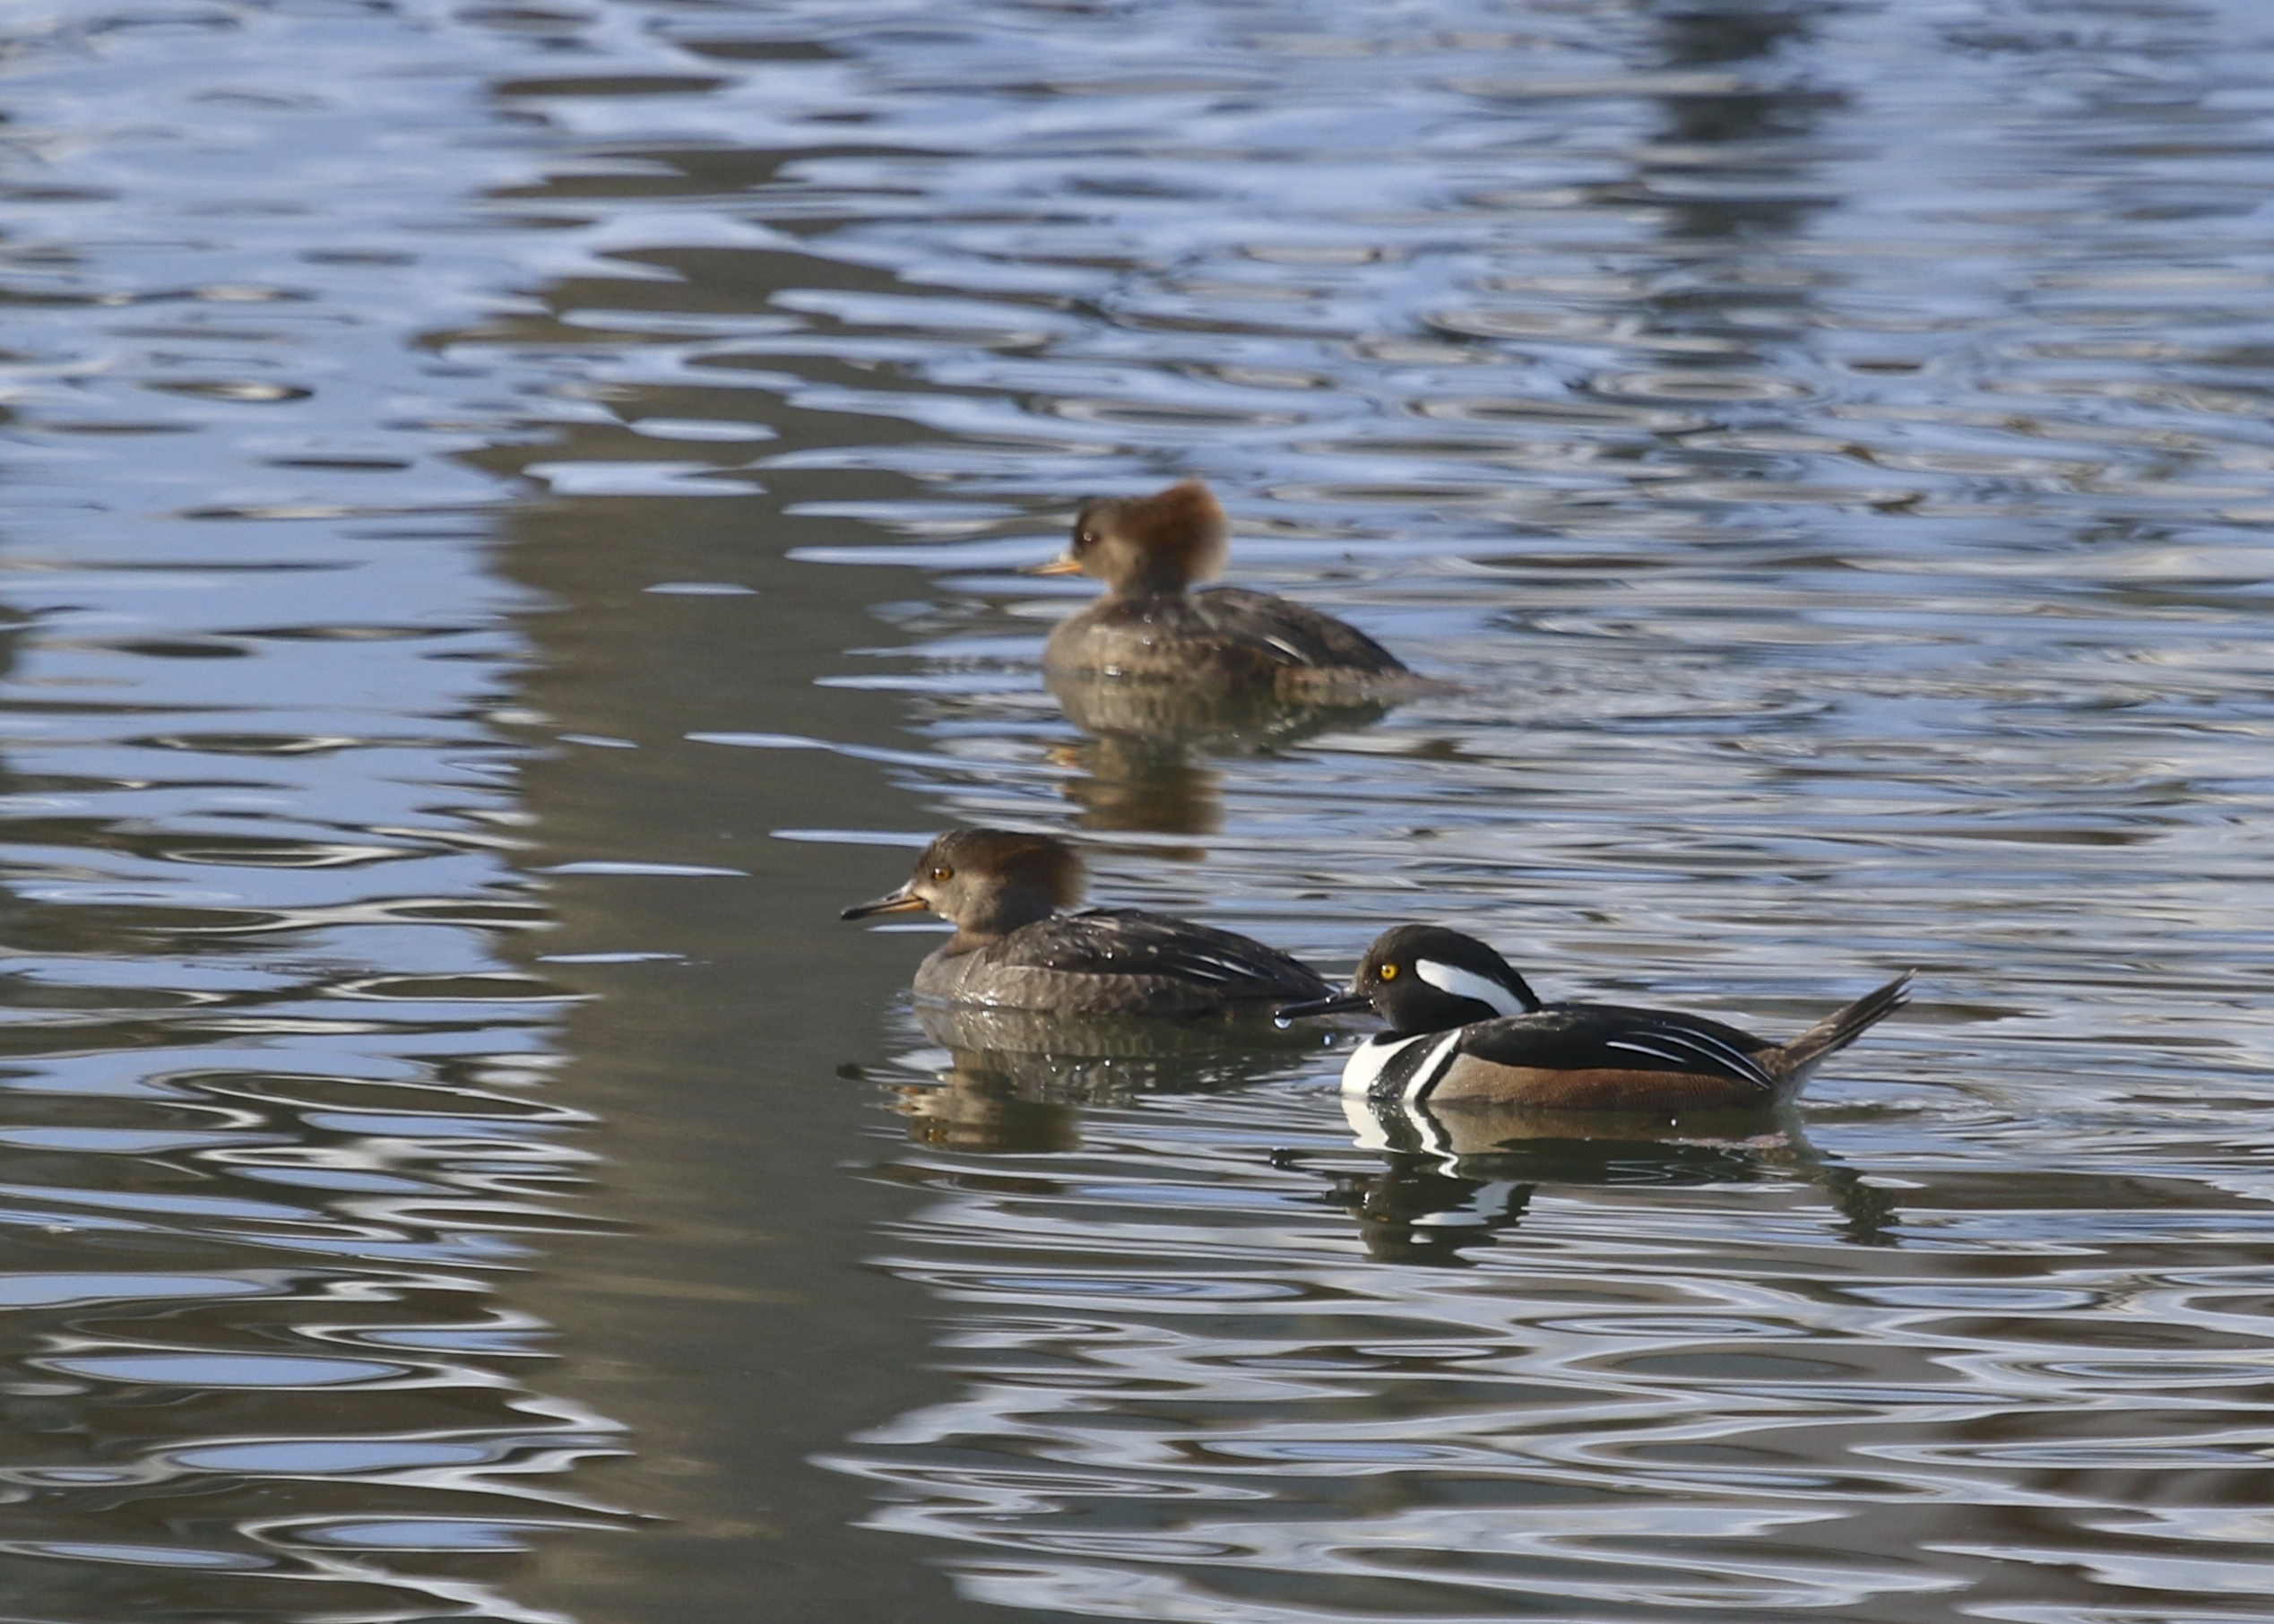 The Hooded Mergansers at Schervier Pavilion were relatively confiding.